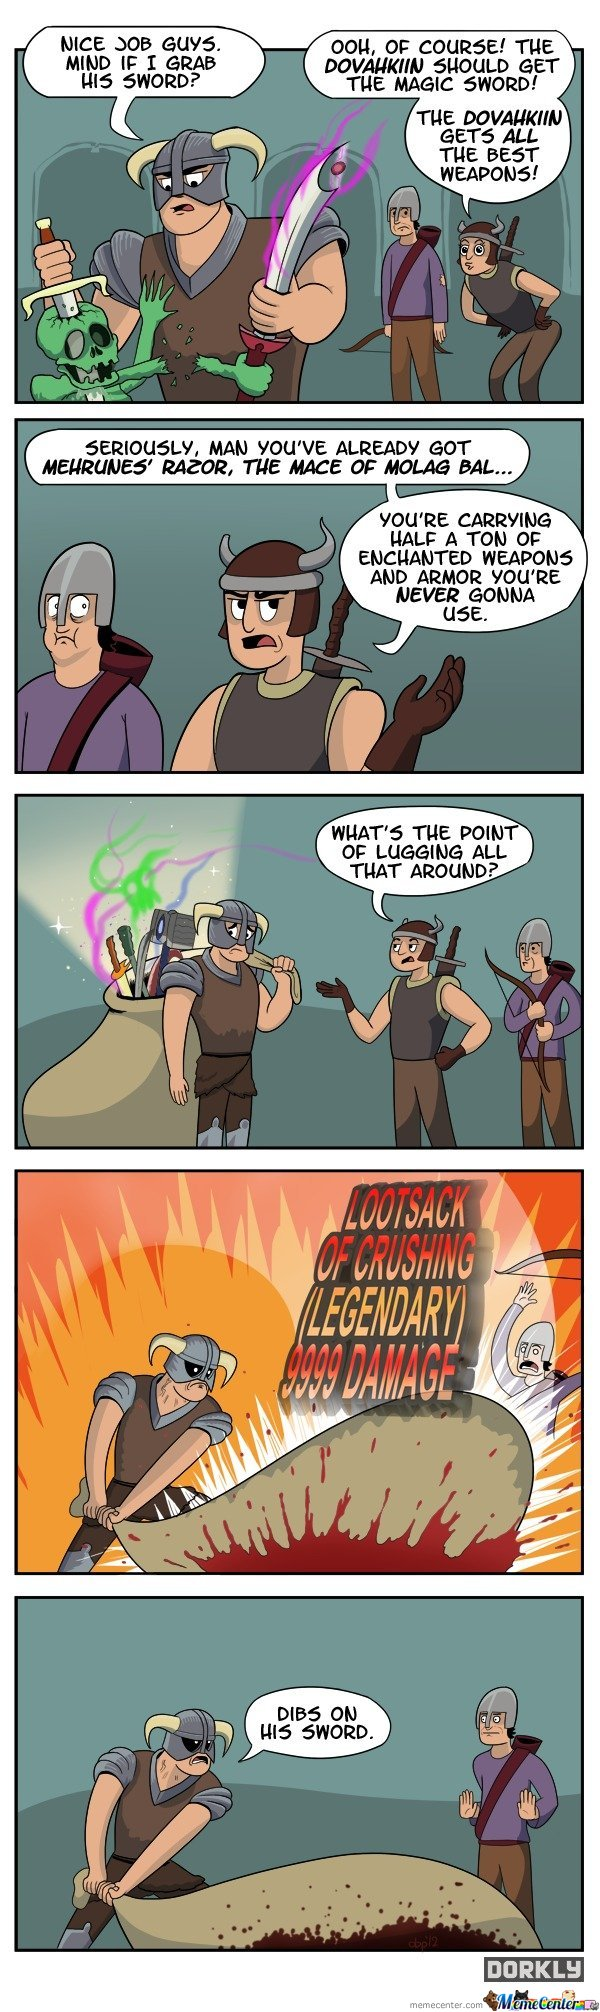 Skyrim Comic - The Dovahkiin gets all the best weapons